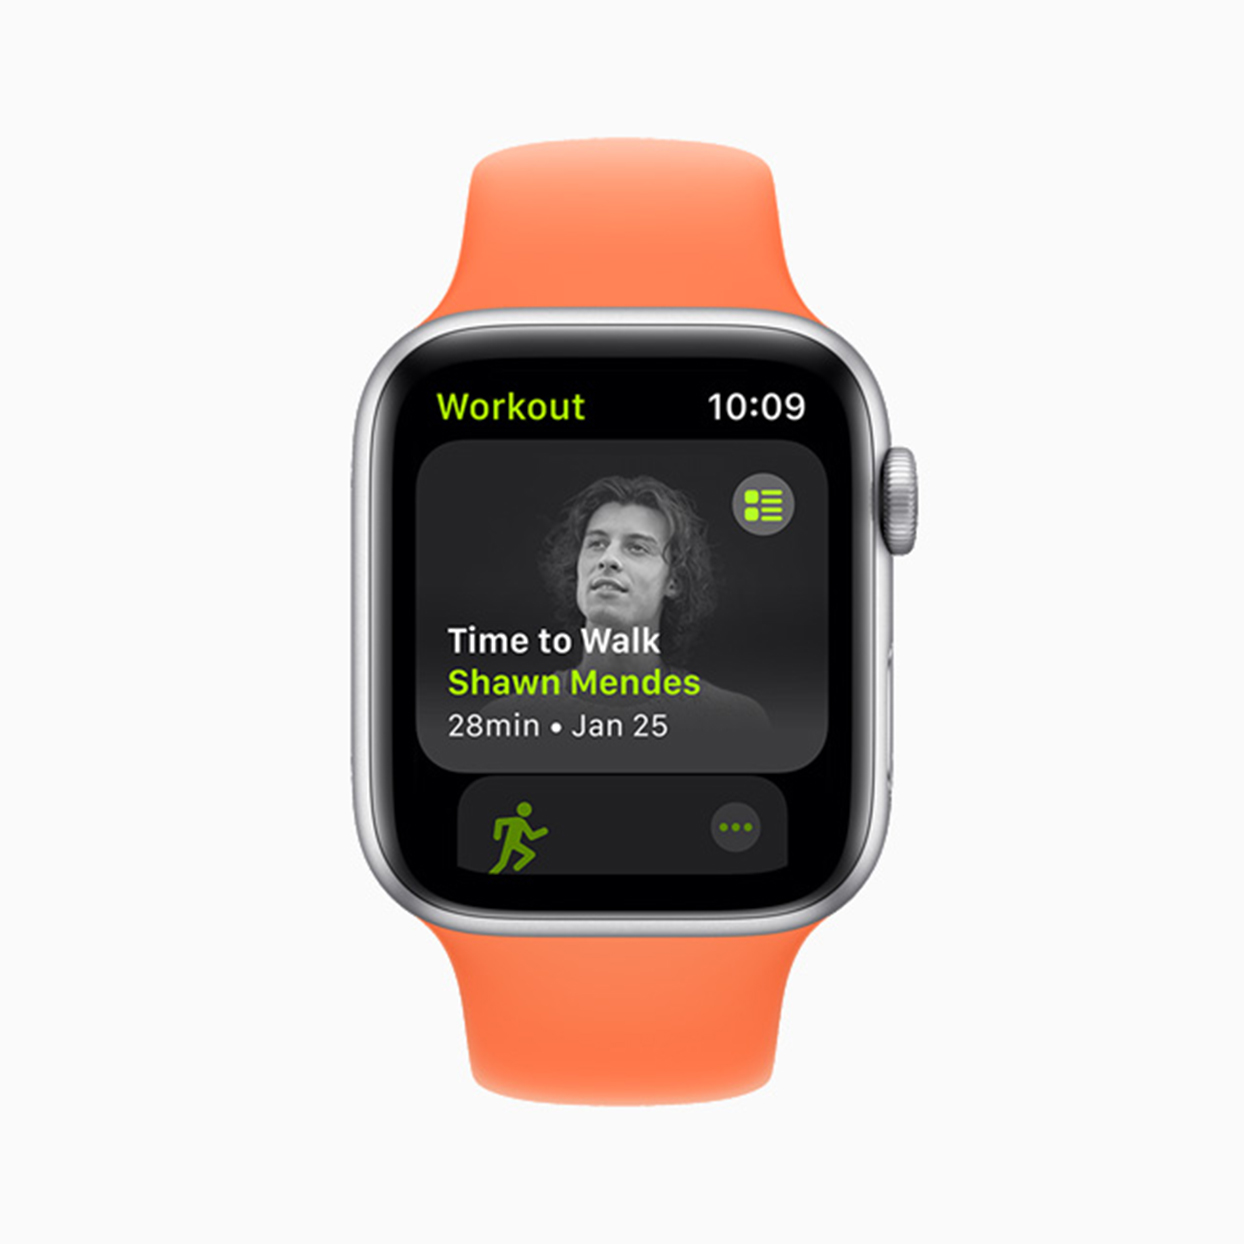 Shawn Mendes' Time to Walk on Apple Watch